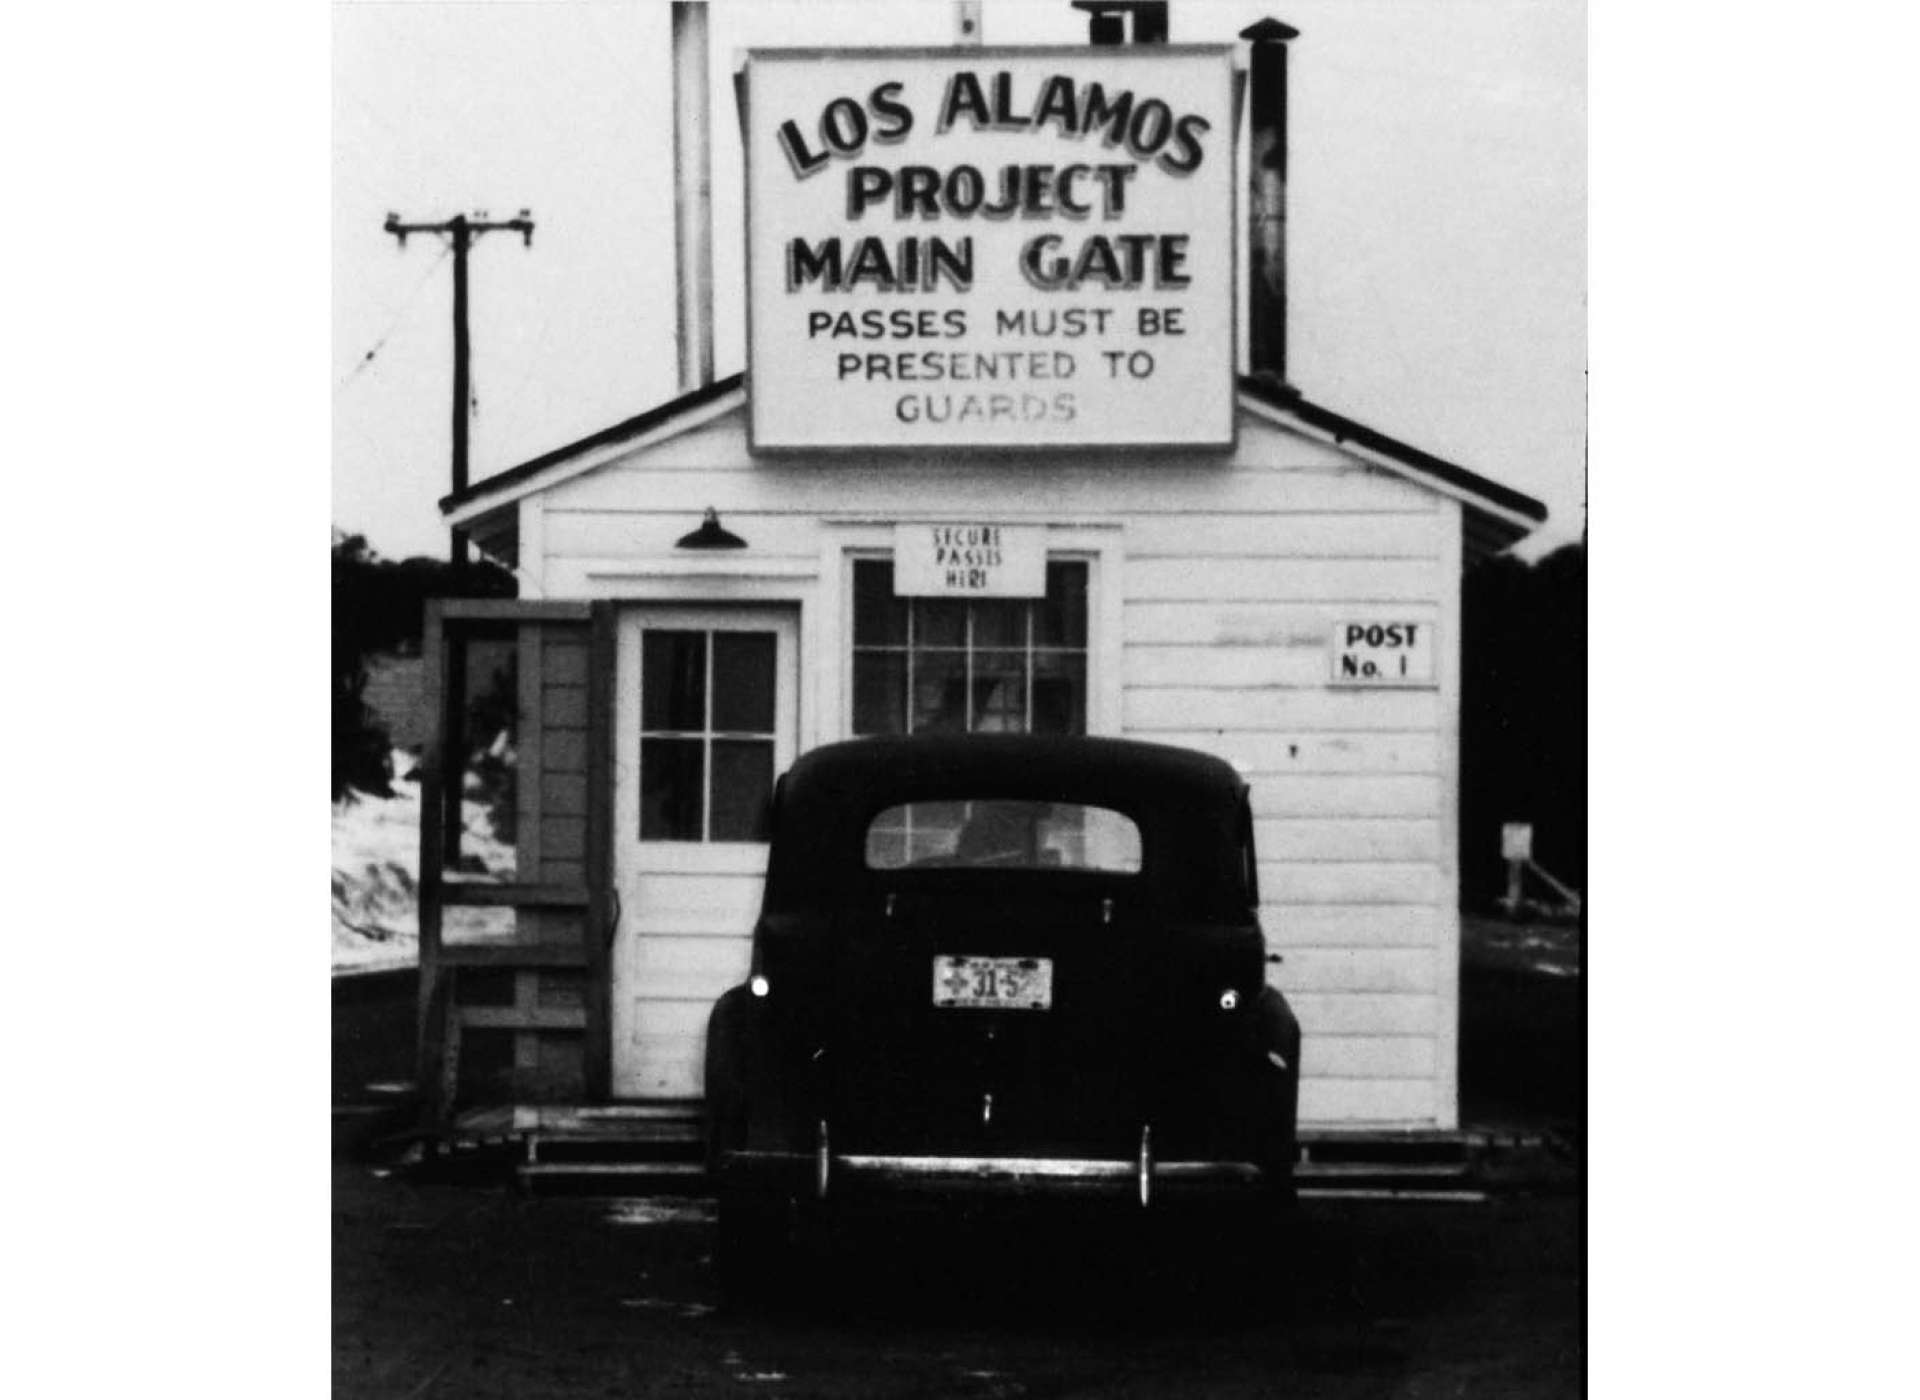 1943 Los Alamos Project Main Gate. Courtesy of Los Alamos National Laboratory.